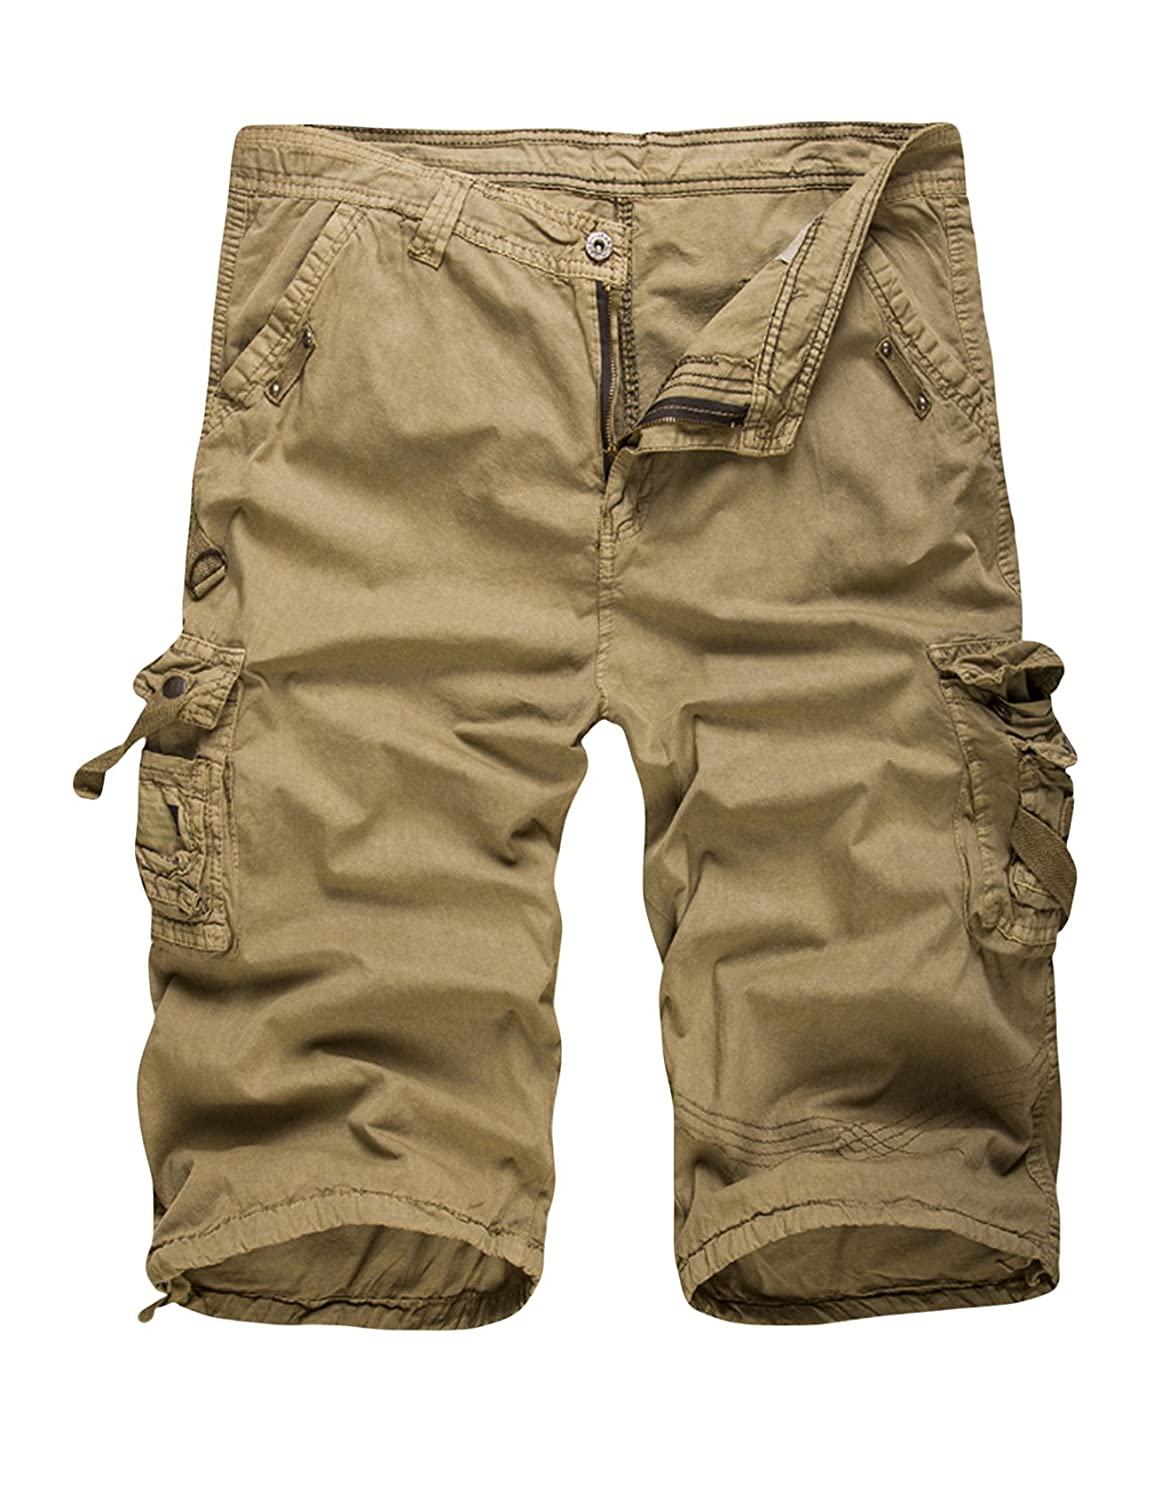 newrong Men's Casual Cargo Shorts Multi Pockets XZMYNC0493